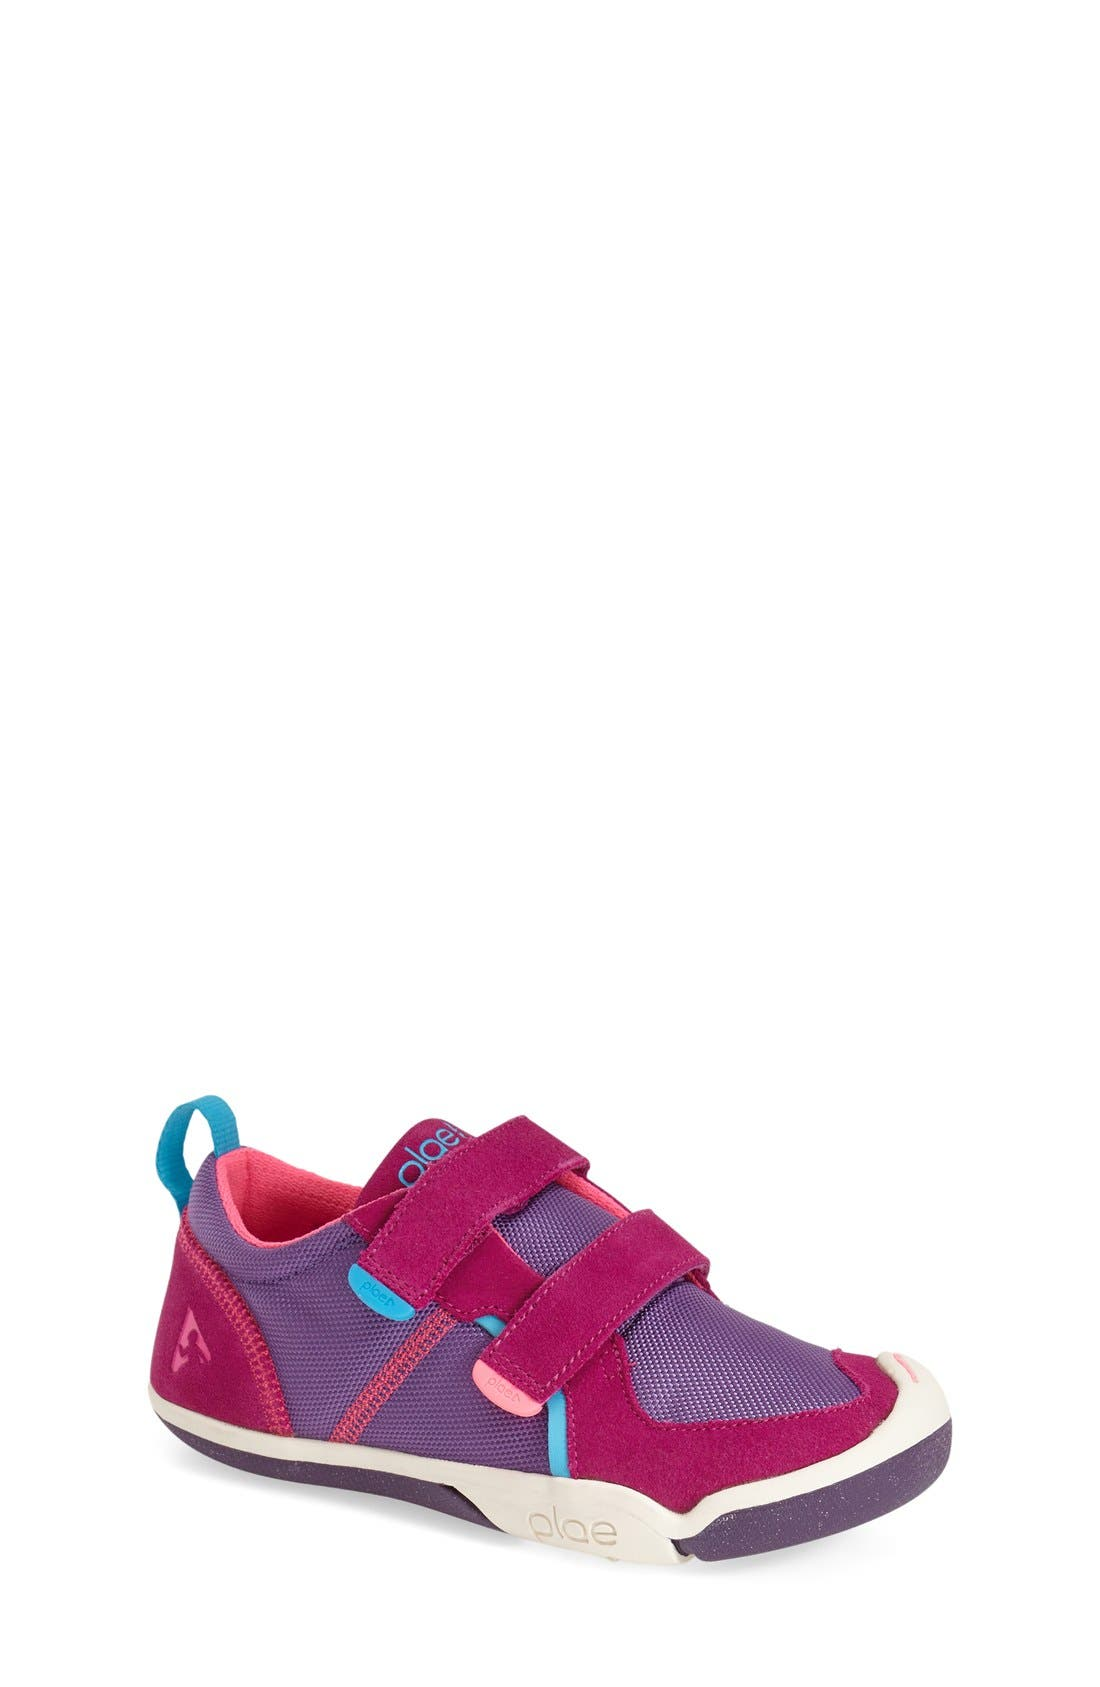 PLAE 'Ty' Customizable Sneaker (Walker, Toddler & Little Kid)